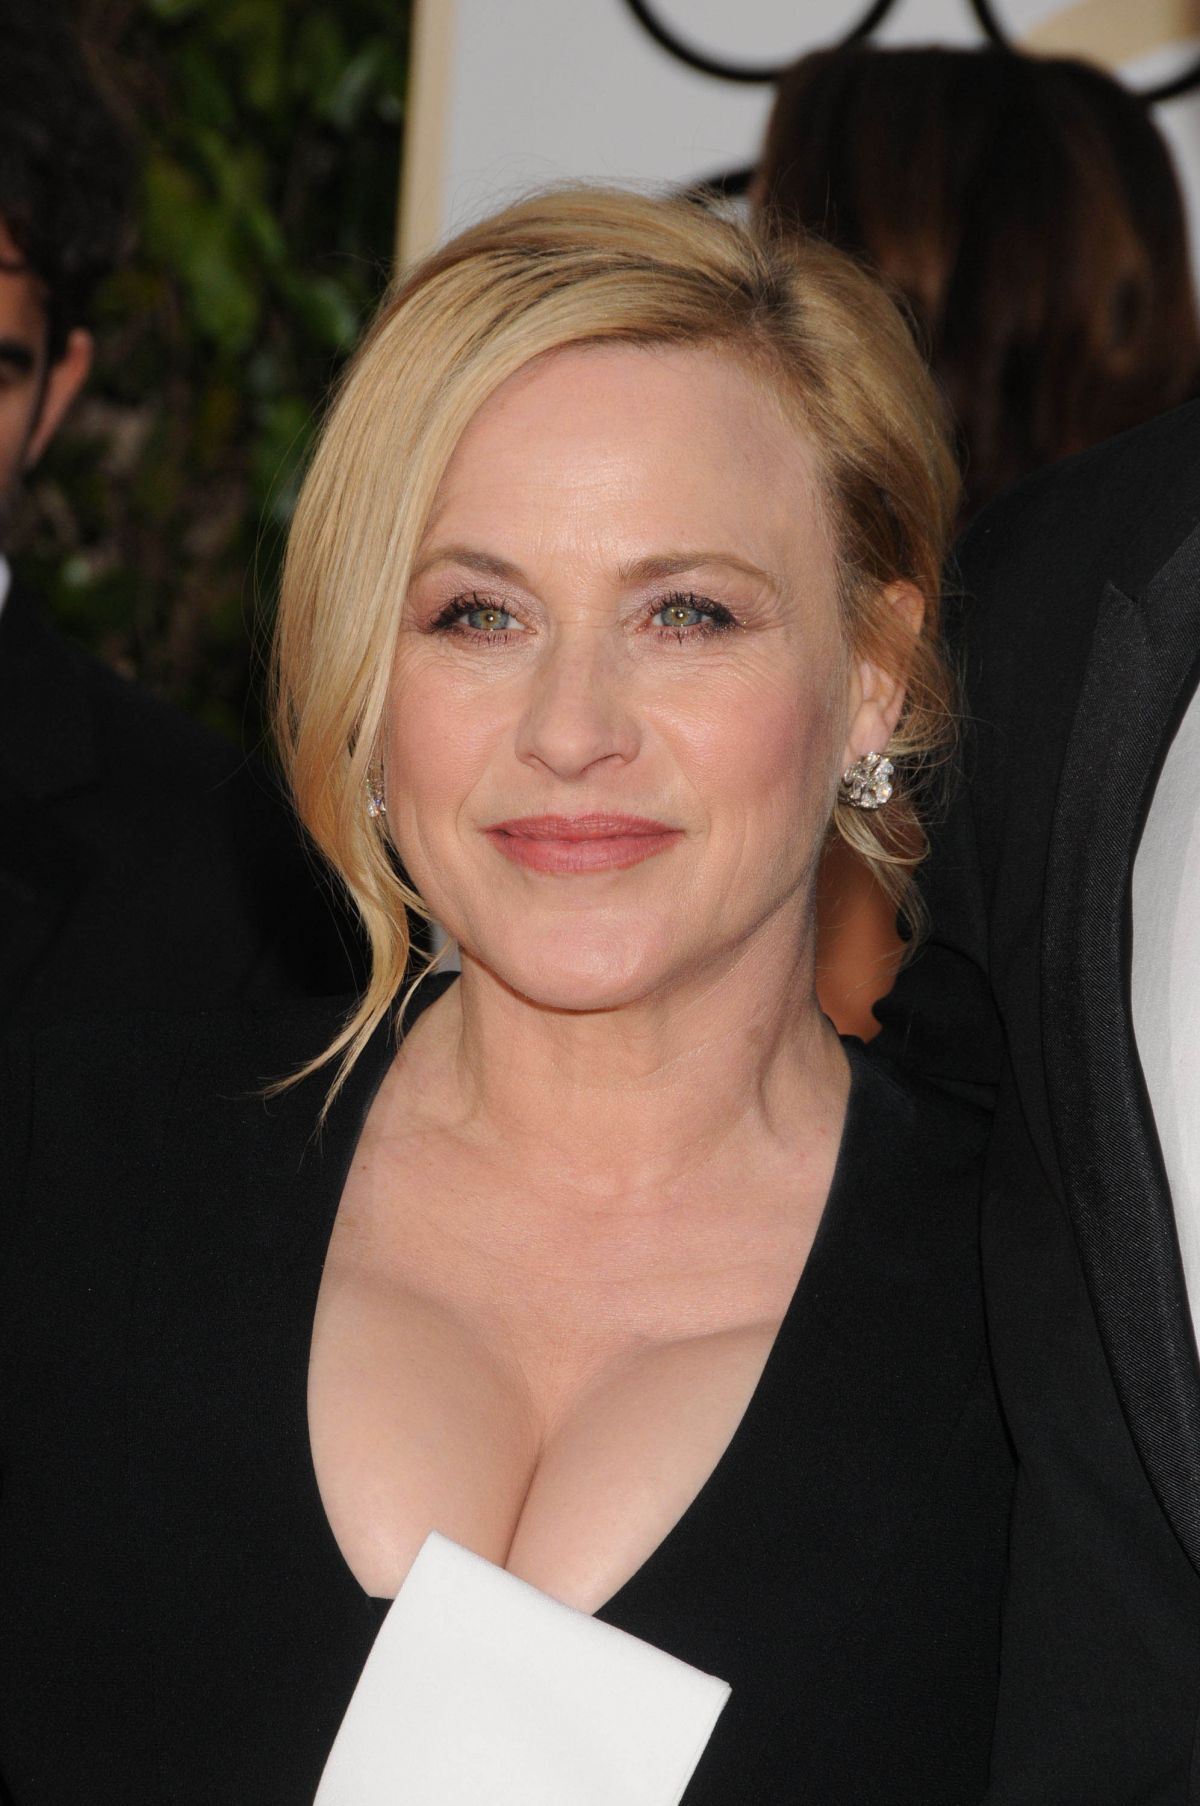 PATRICIA ARQUETTE at 73rd Annual Golden Globe Awards in Beverly Hills 10/01/2016